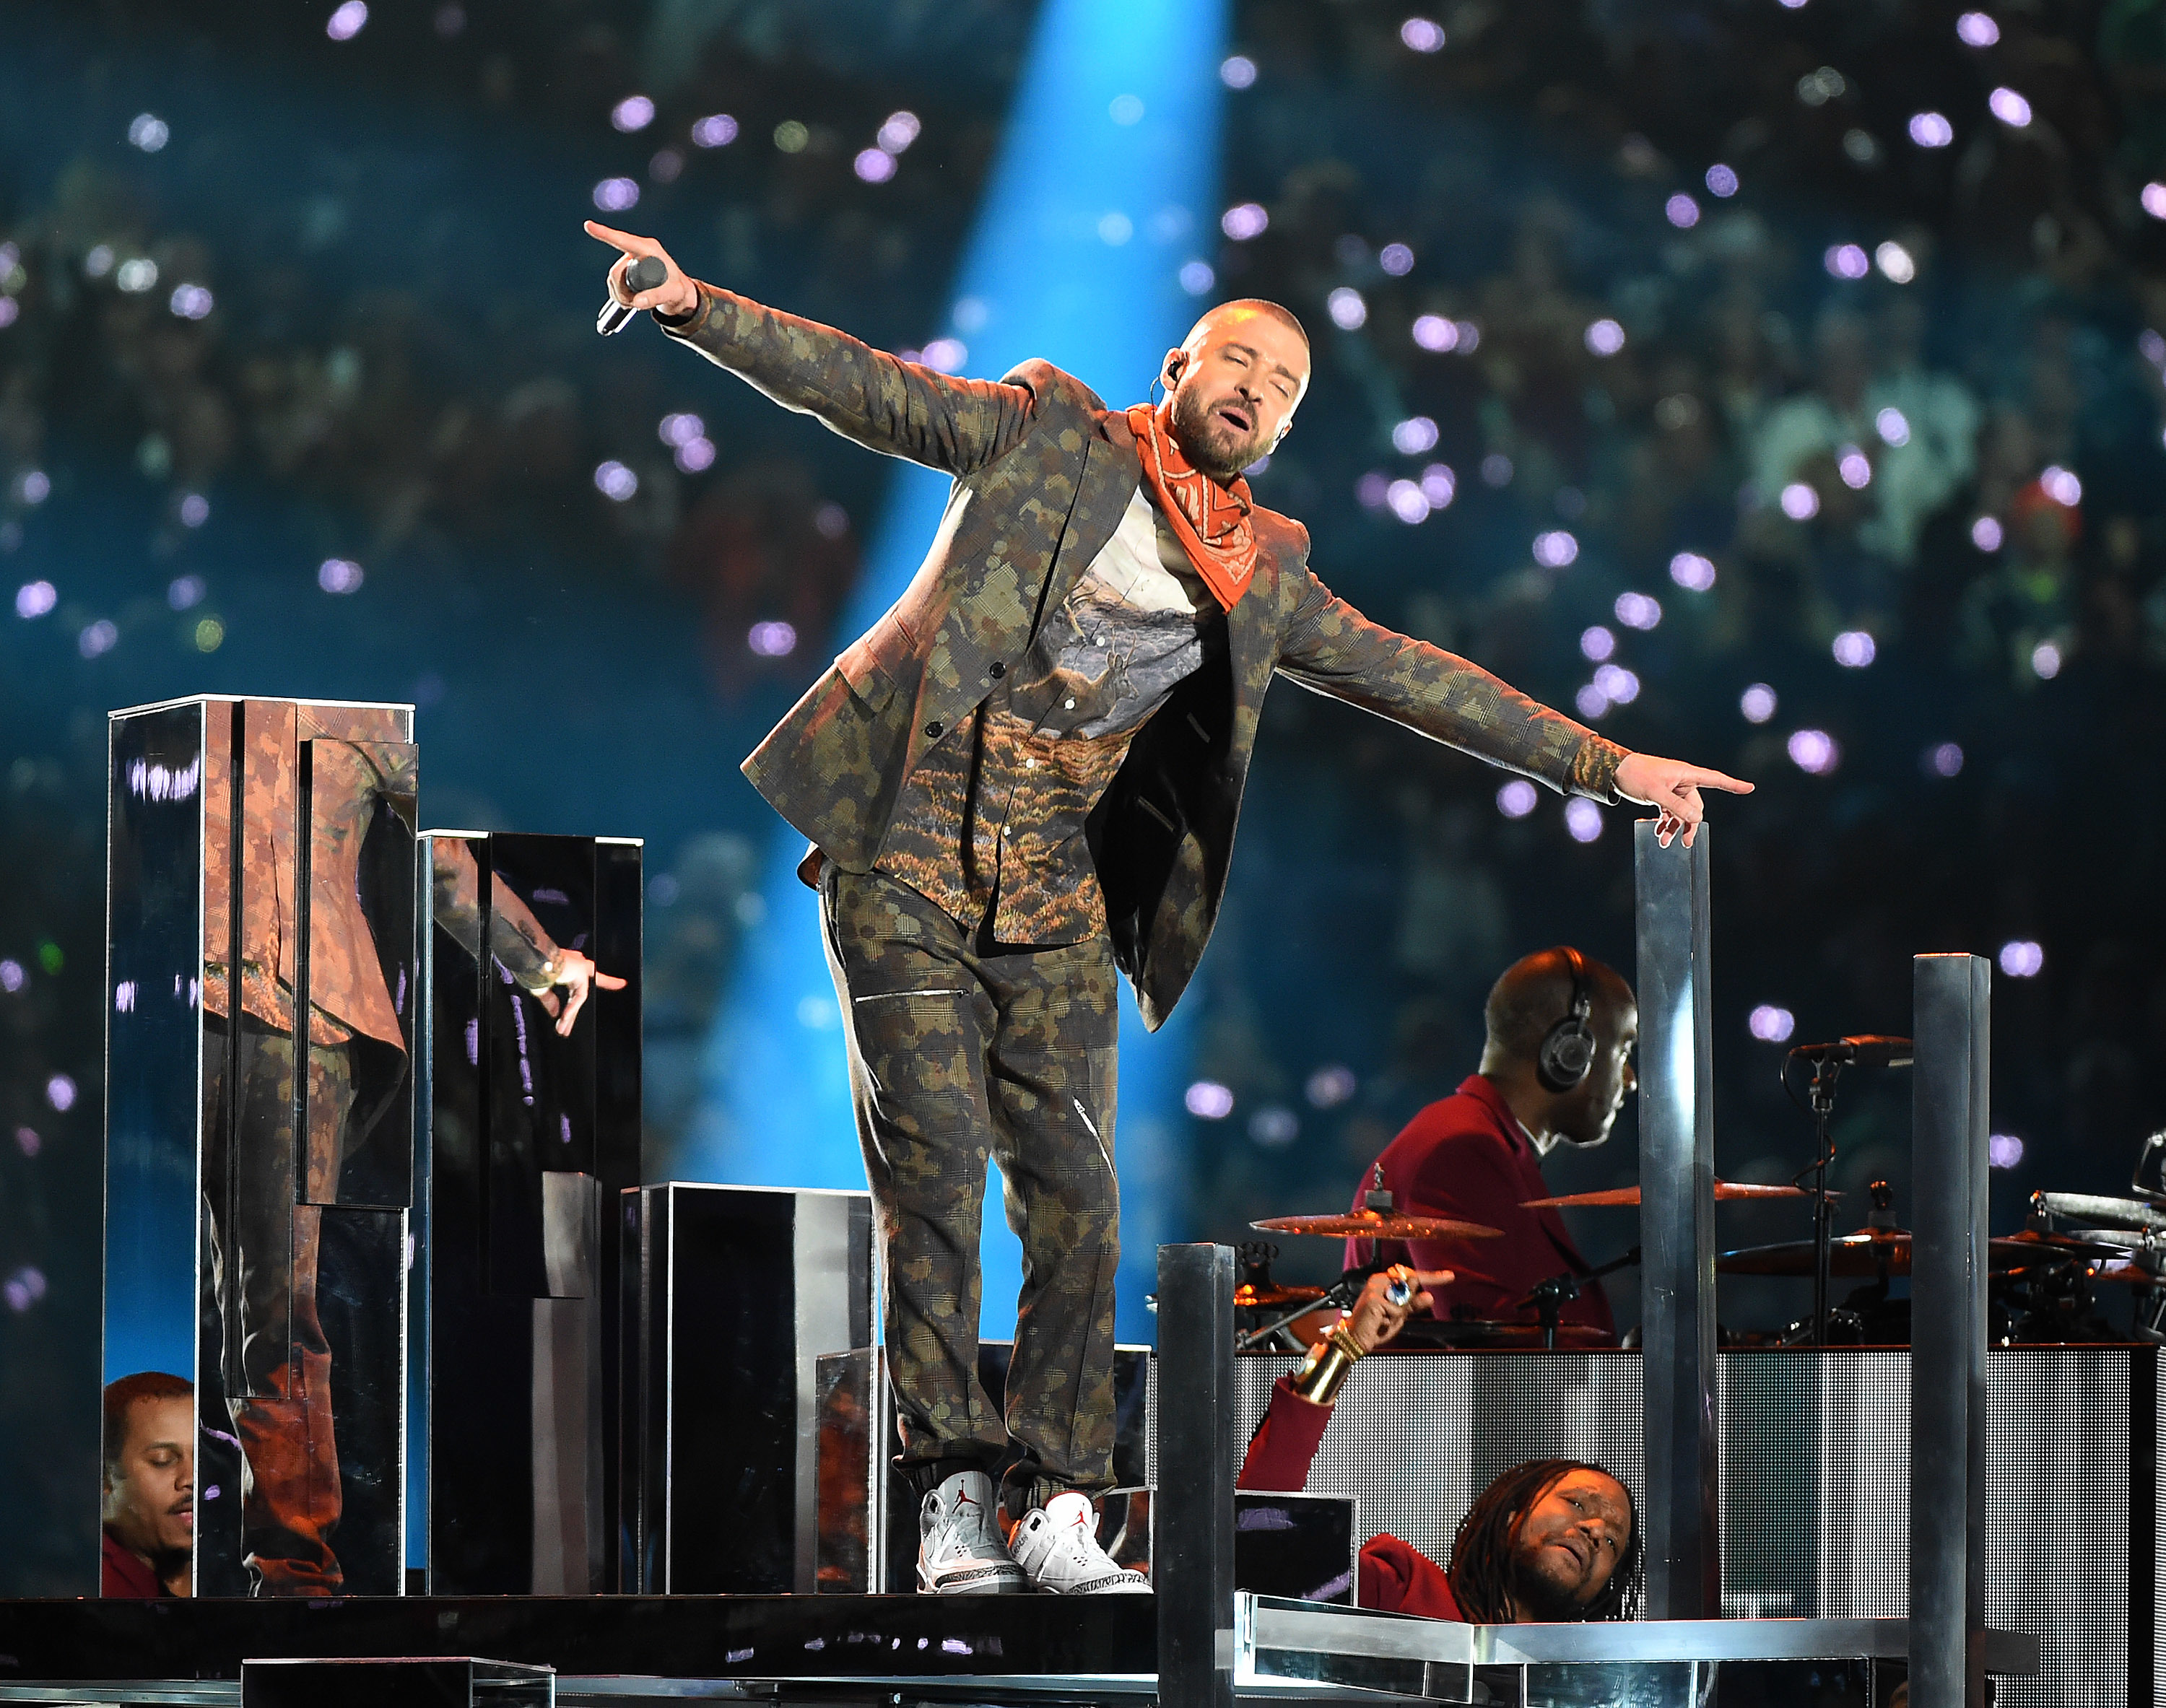 Justin Timberlake performs on the Pepsi Super Bowl Halftime Show at Super Bowl LII at  U.S. Bank Stadium in Minneapolis, Minnesota, on Feb. 4, 2018.